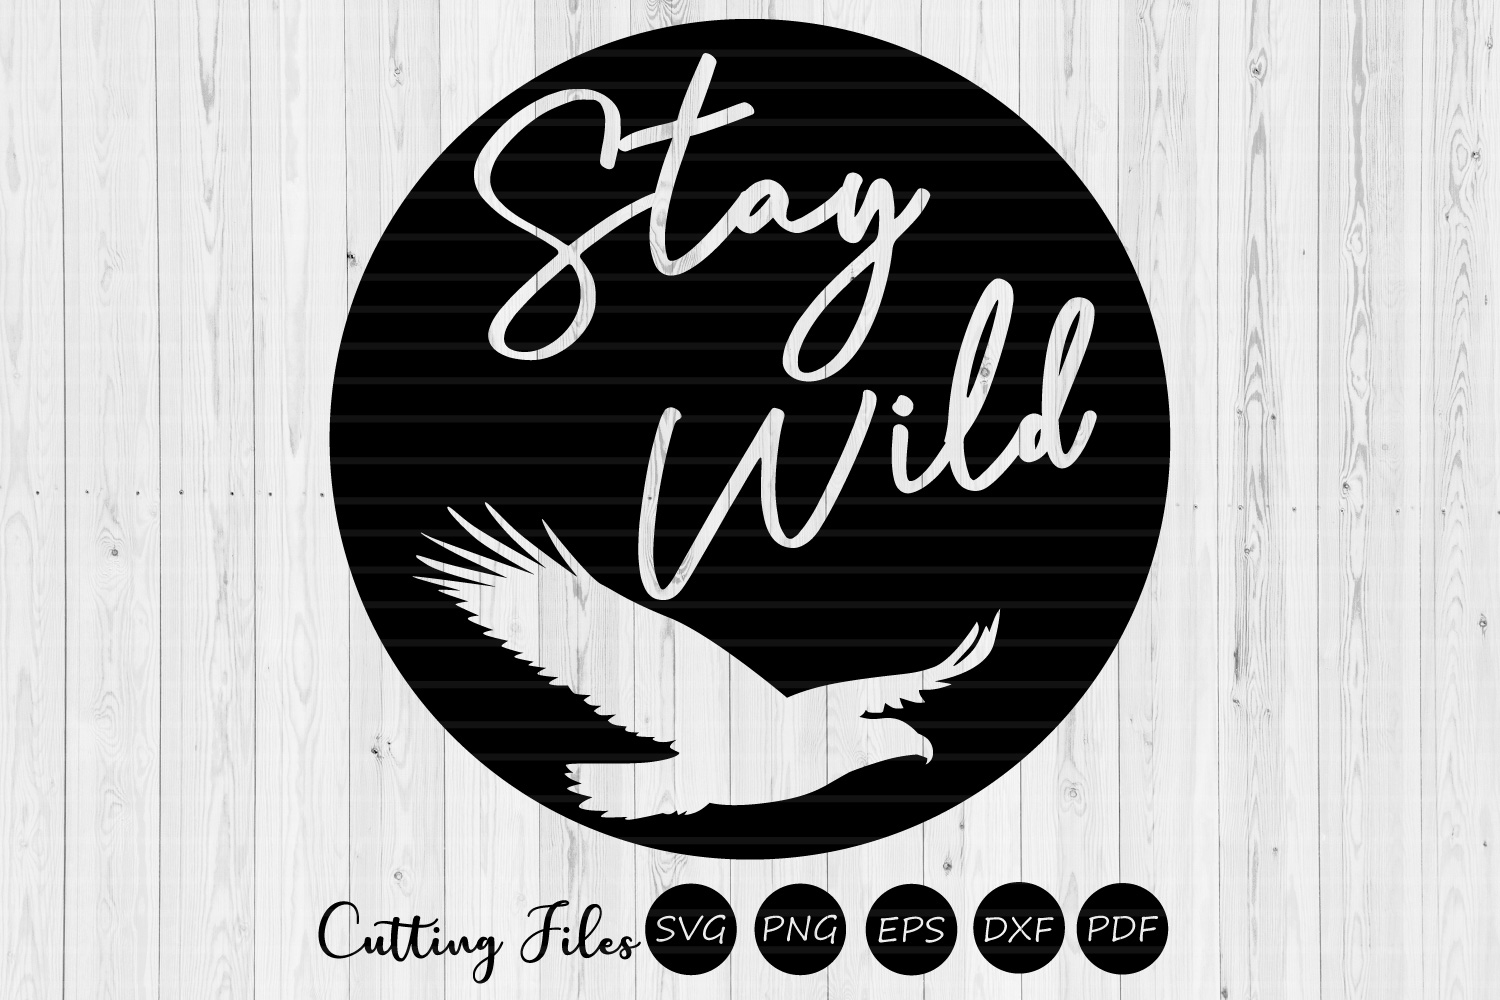 Download Free Stay Wild Camping Svg Graphic By Hd Art Workshop Creative Fabrica for Cricut Explore, Silhouette and other cutting machines.